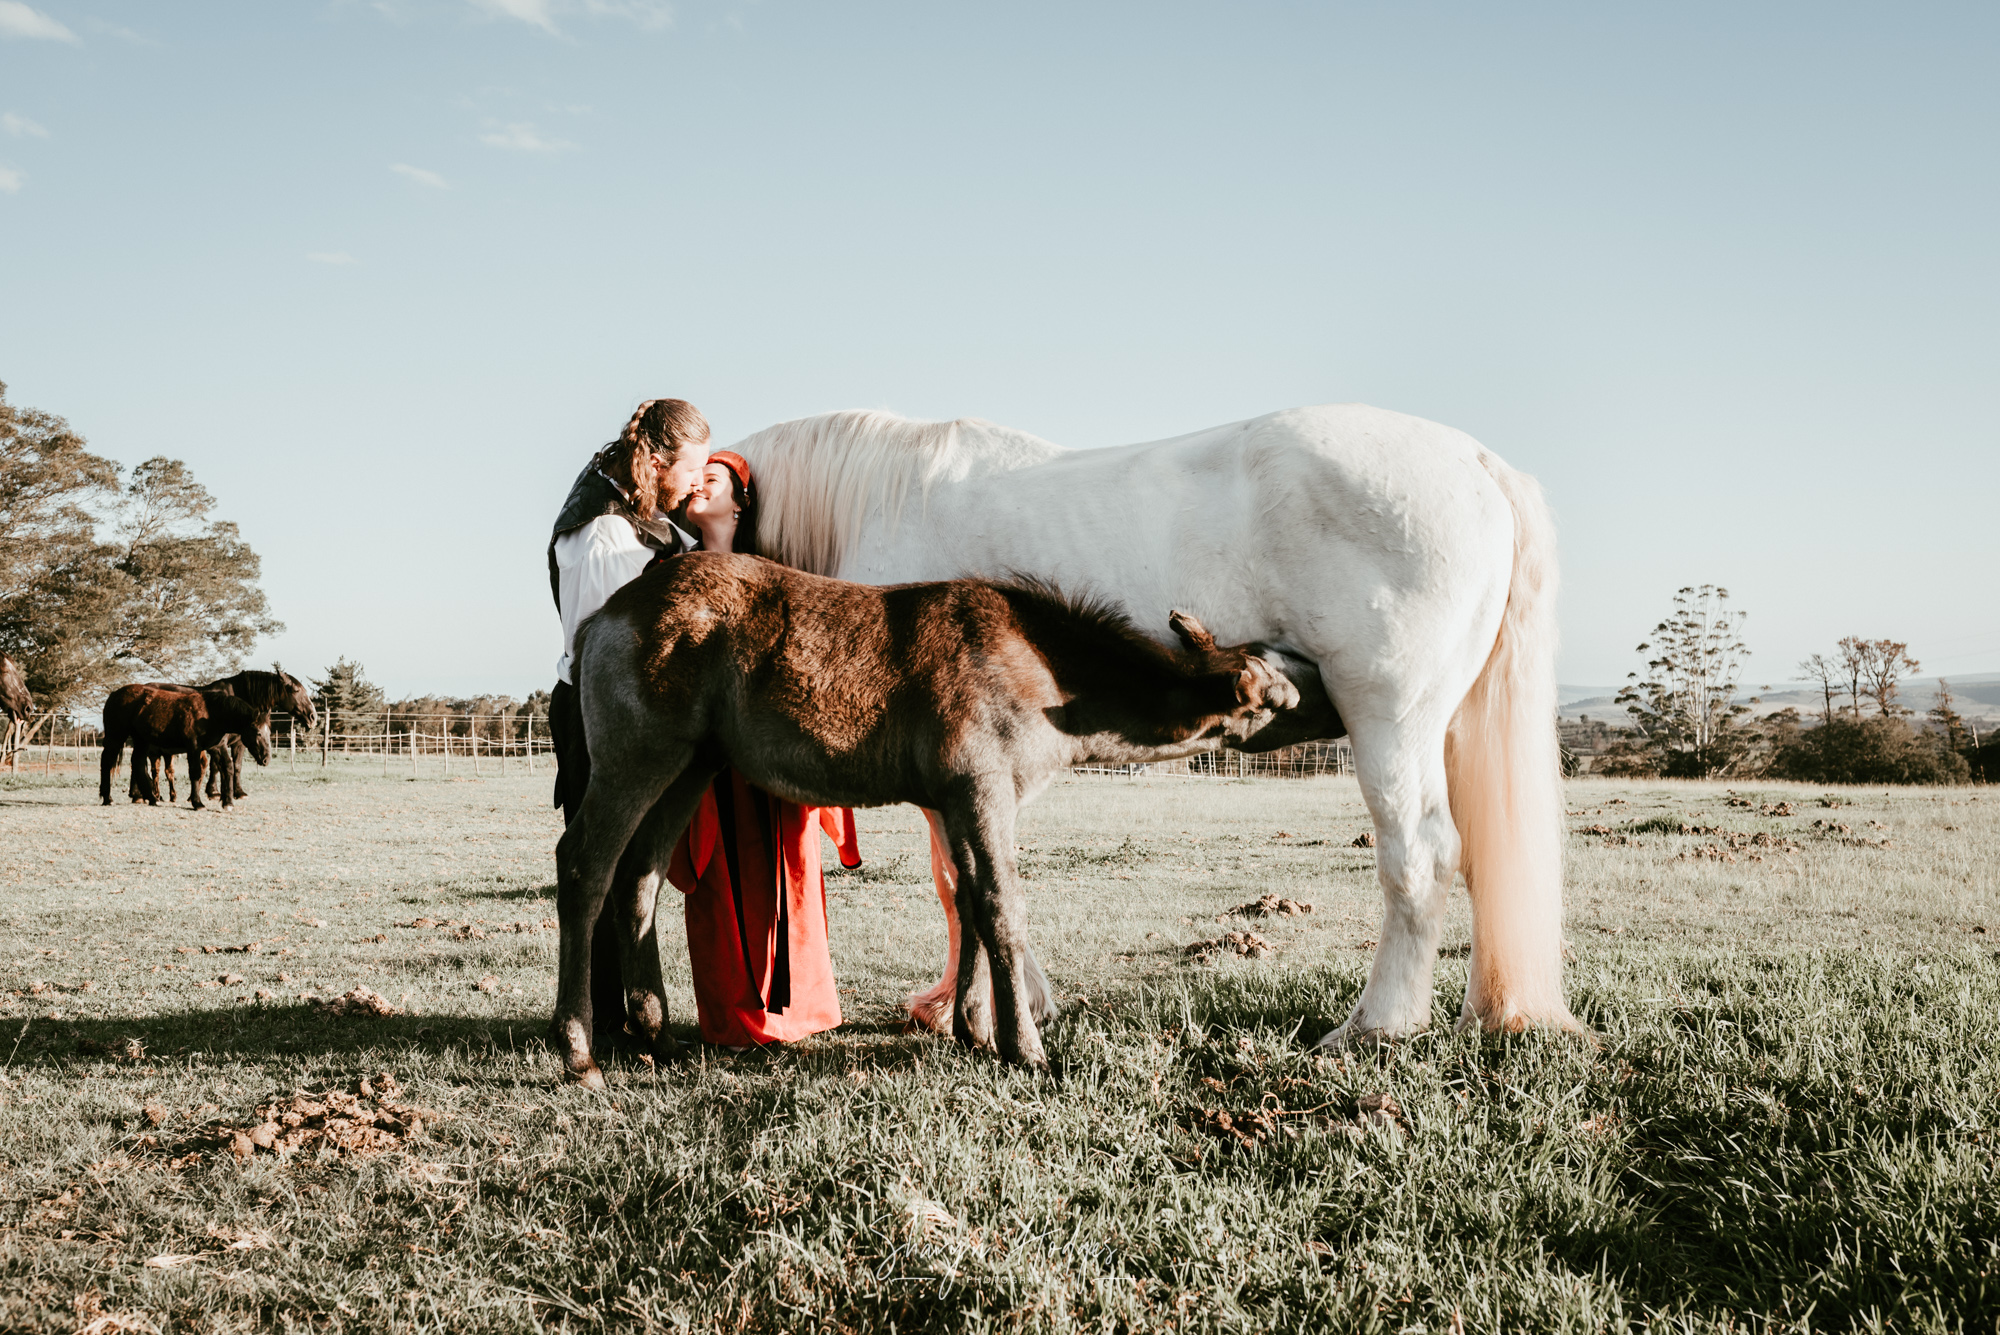 Katrina & Stuart's engagement shoot took place at the Outeniqua Moon Percheron Stud Farm, just outside of George. Photography Sharyn Hodges